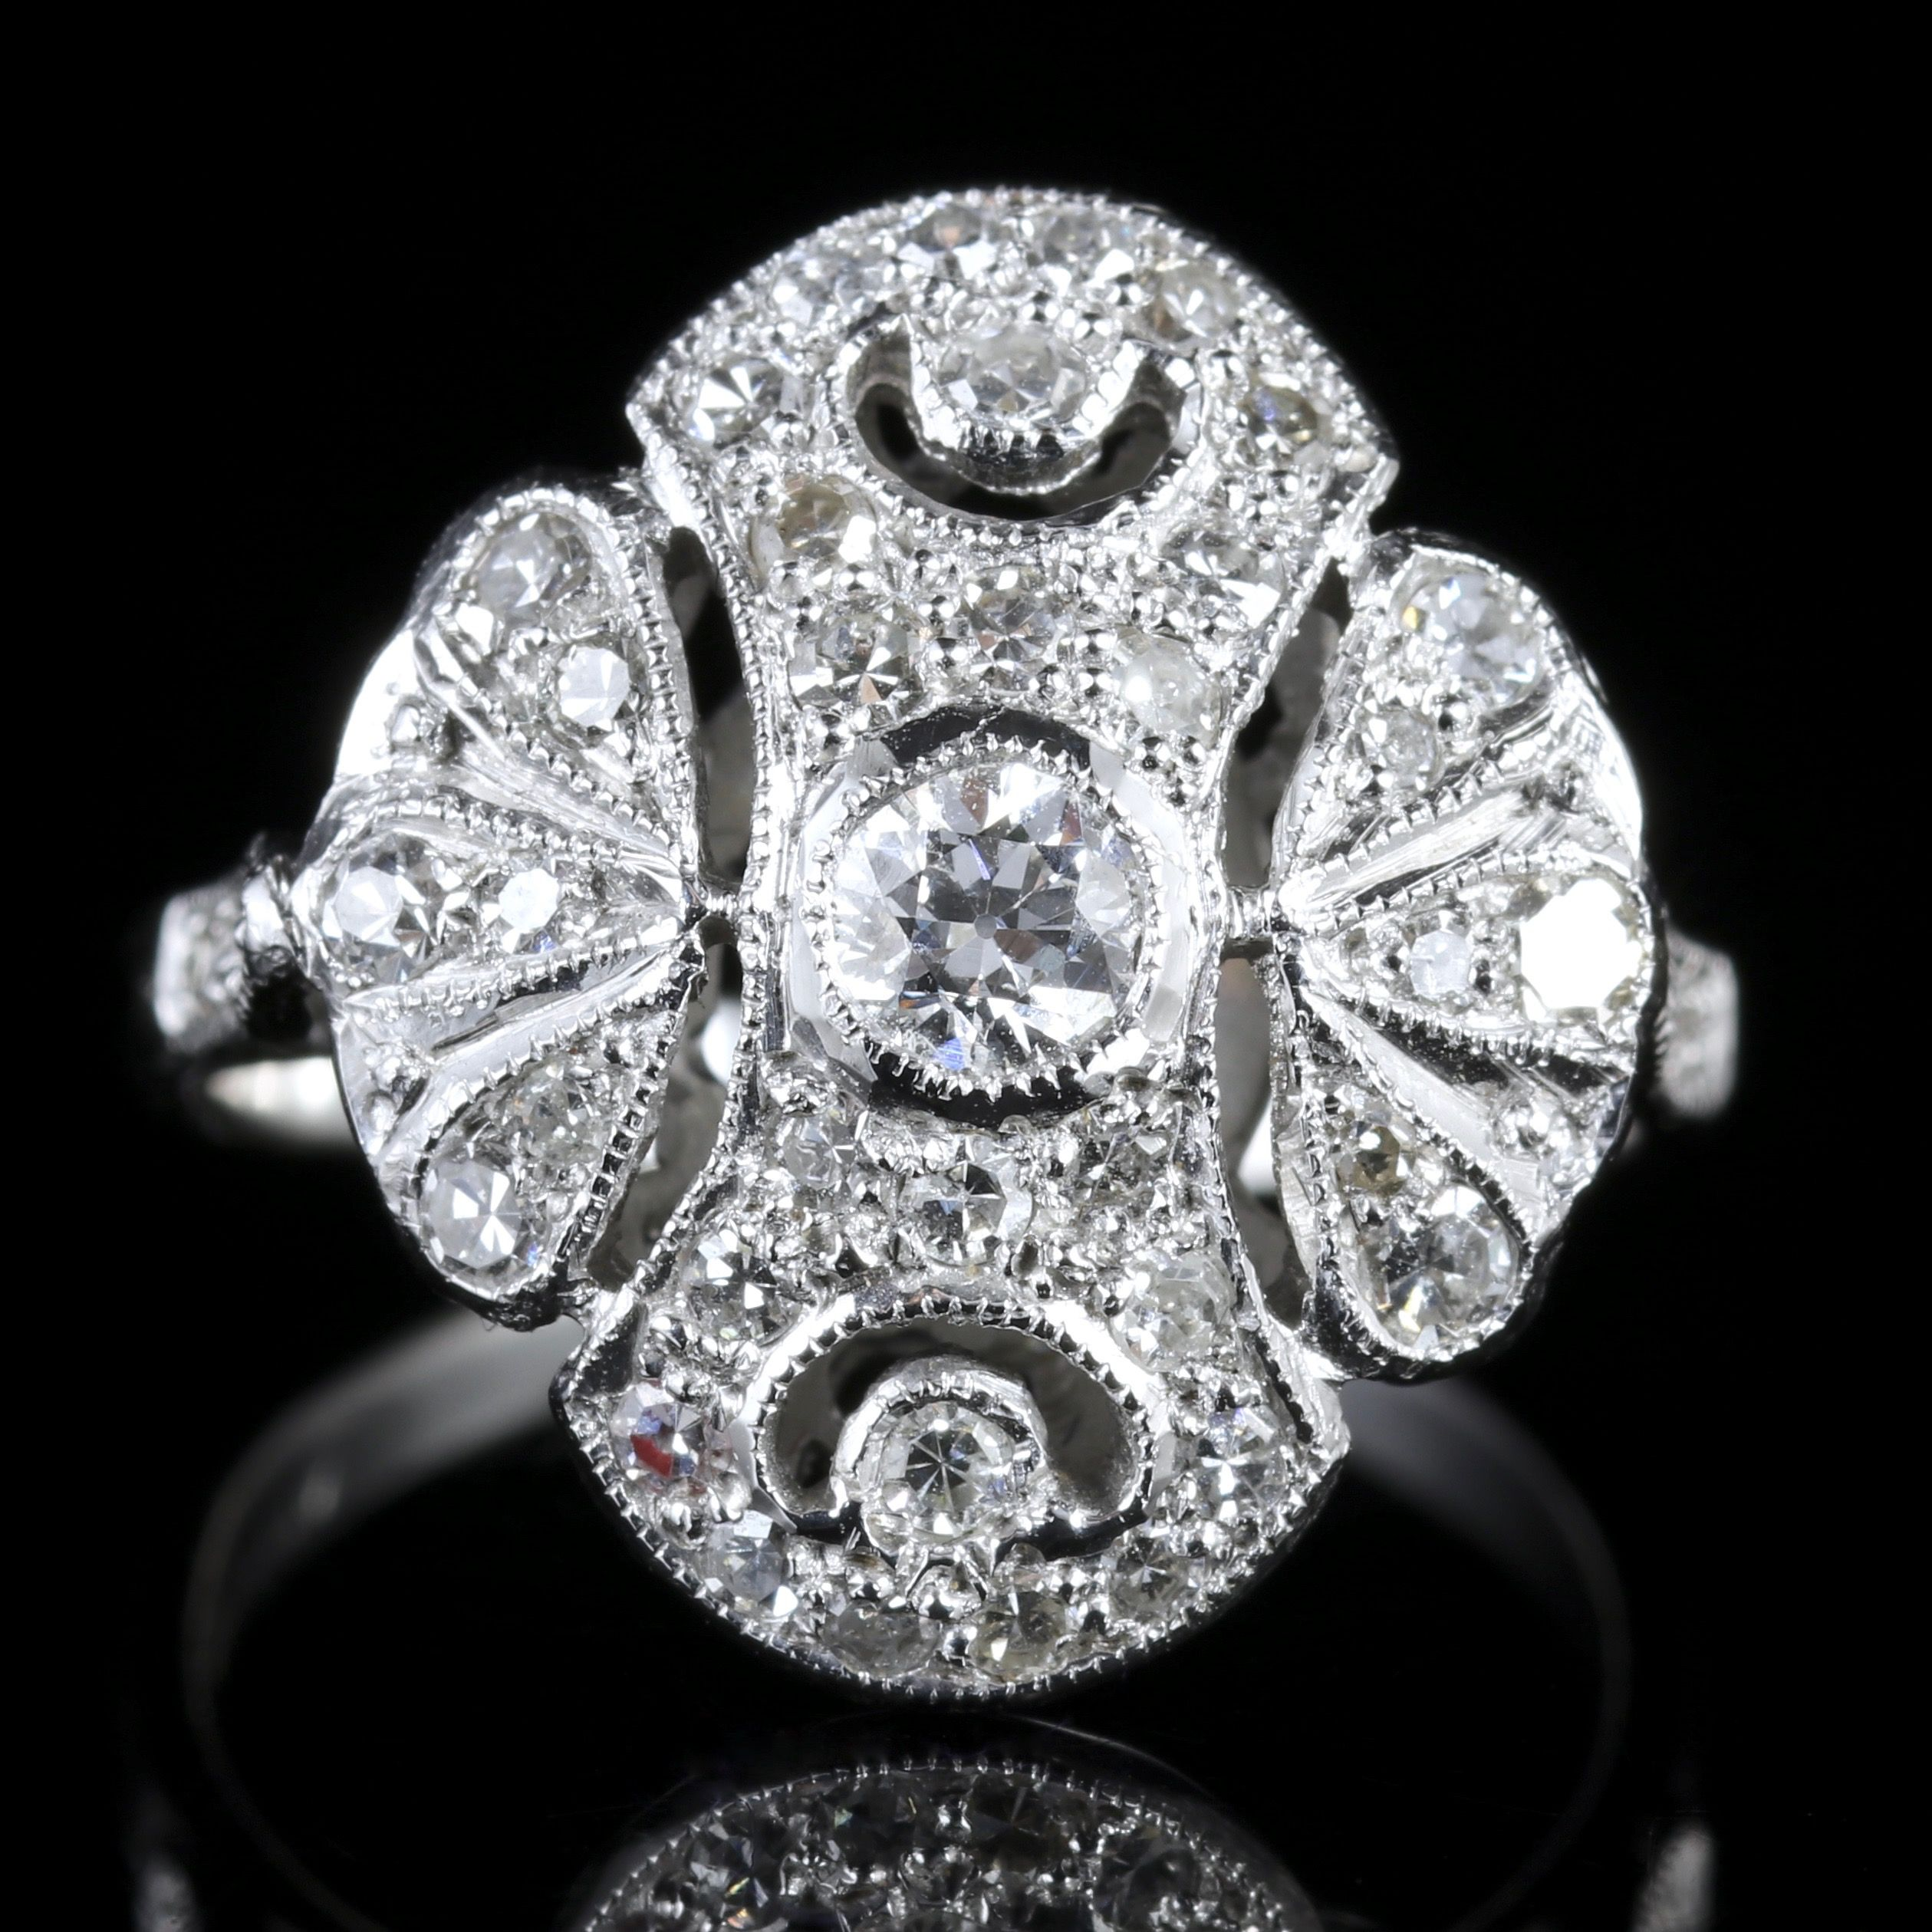 Antique Edwardian Diamond Cluster Ring 18ct White Gold